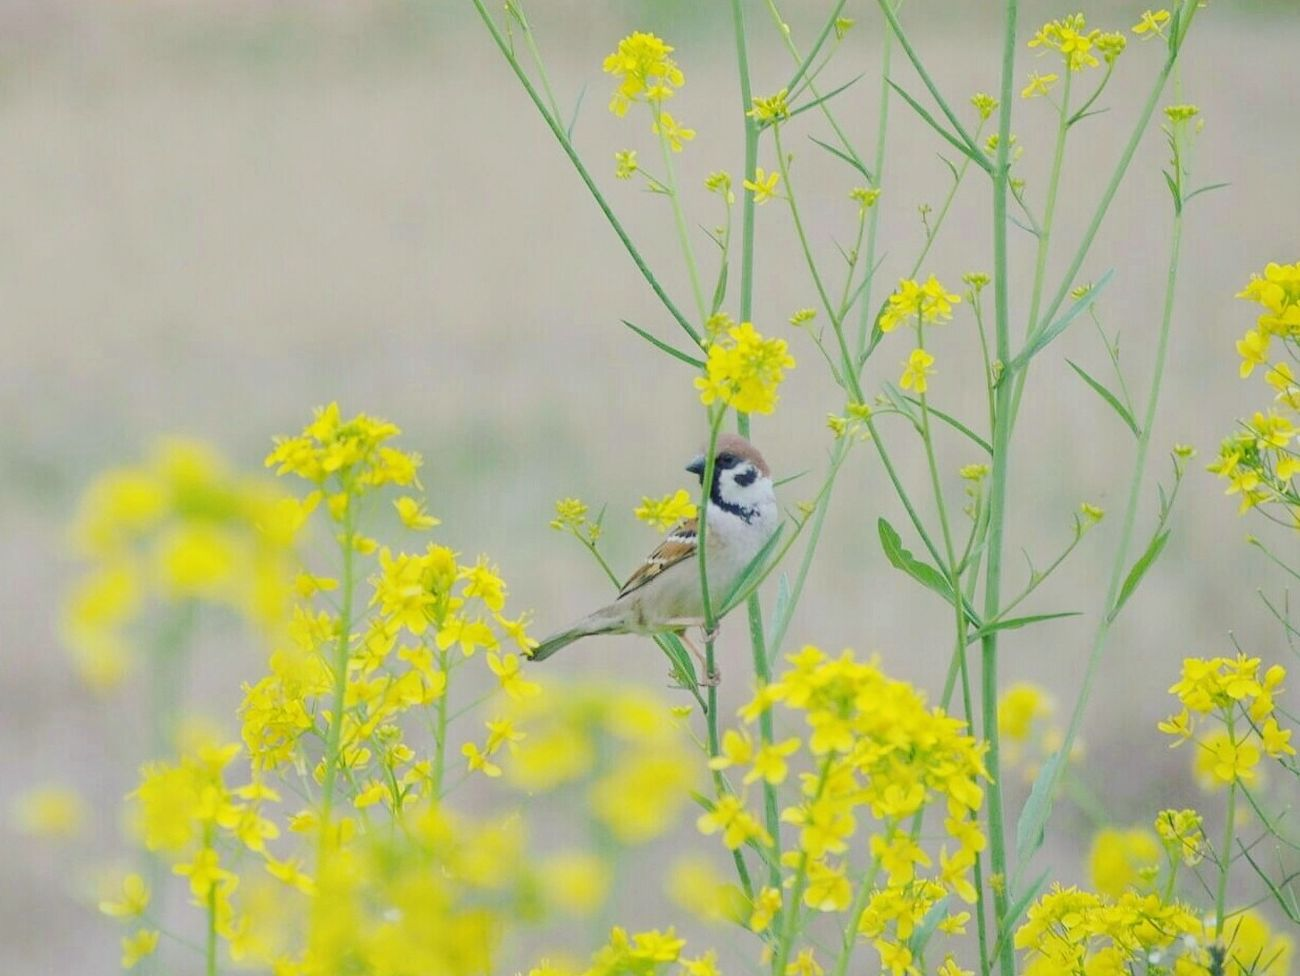 ちゅん♪ちゅん♪ Springtime すずめ Sparrow 菜の花 春 Spring 日だまり My Point Of View Flower Collection Taking Photos Nature EyeEm Nature Lover EyeEm Best Shots EyeEm Gallery Eyemphotography EyeEm Best Shots - Nature Bird One Animal